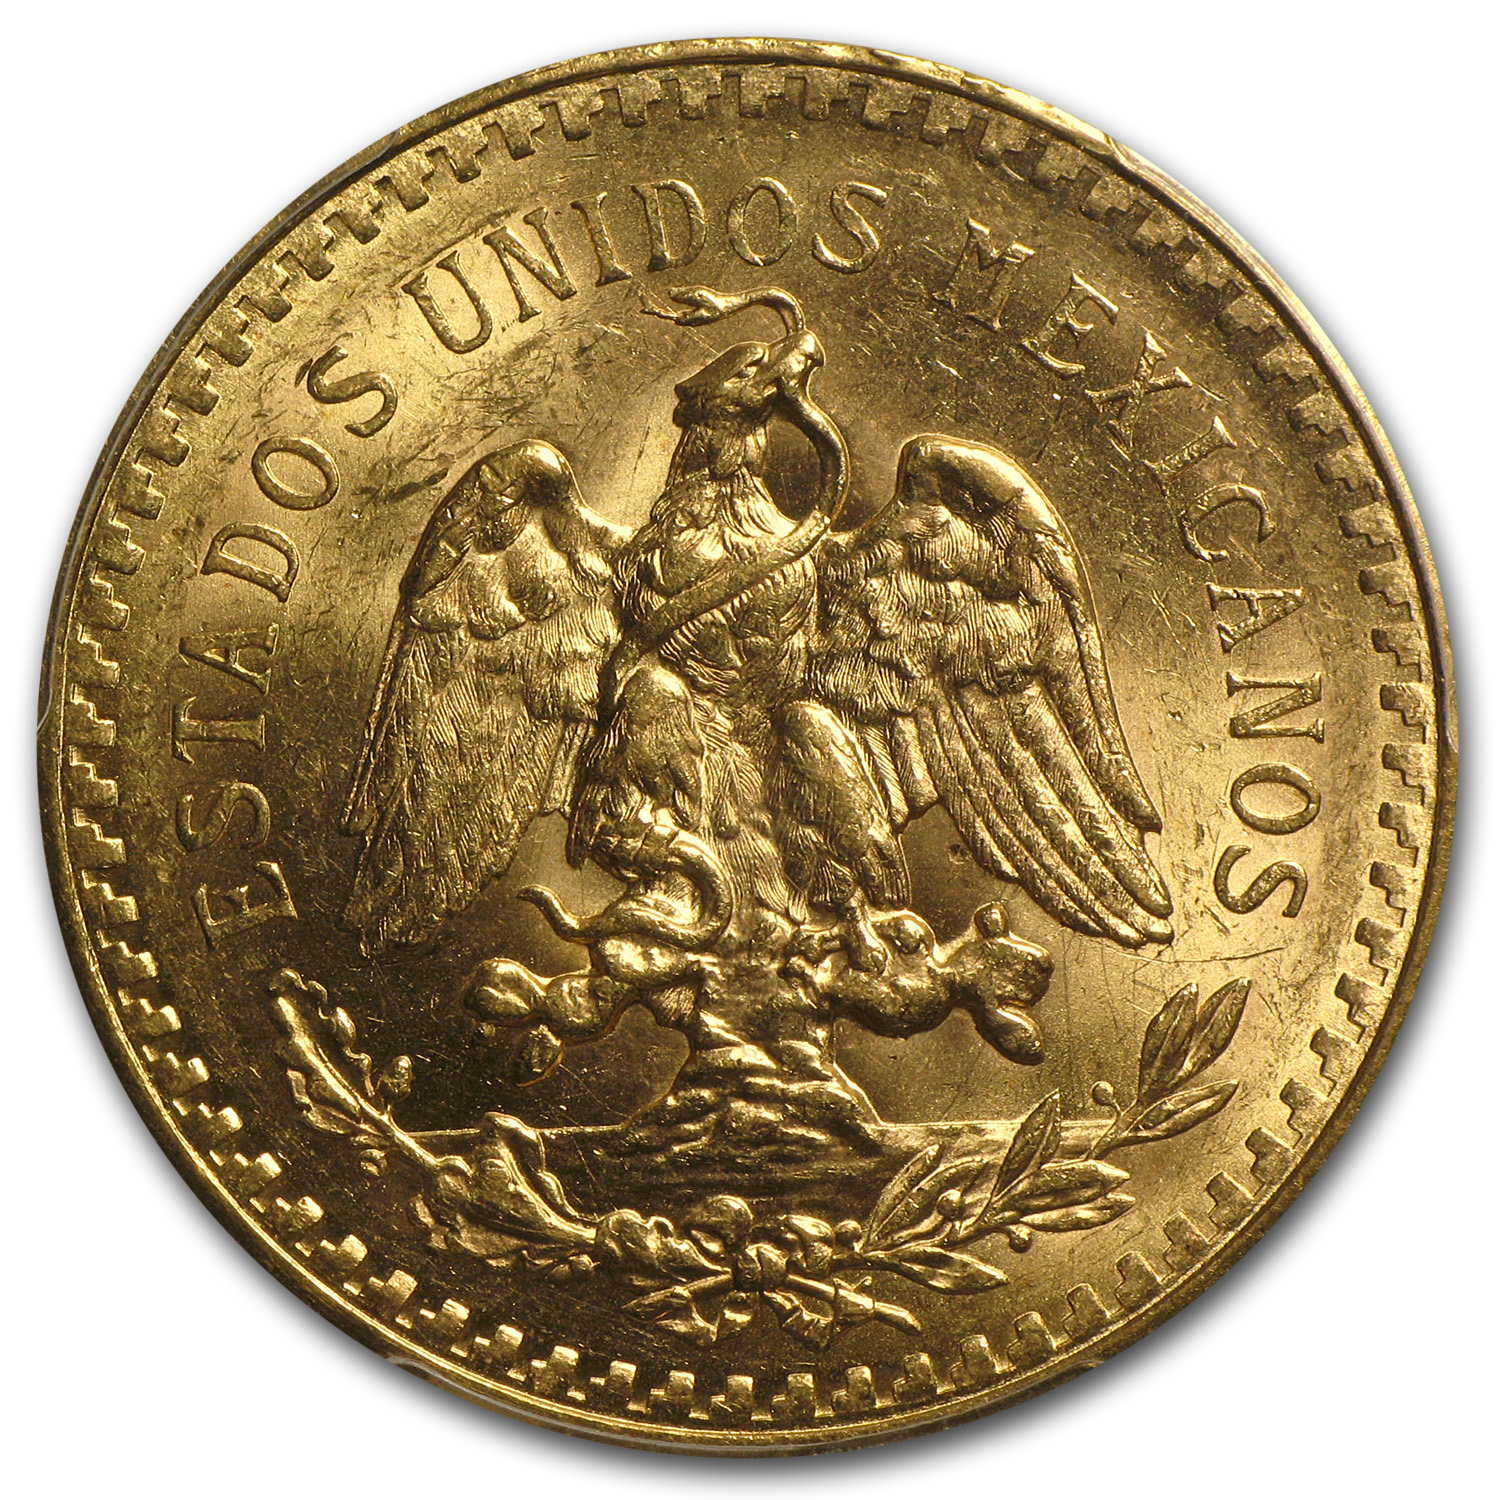 Mexico 1924 50 Pesos Gold Coin - MS-62 PCGS (Secure Plus!)